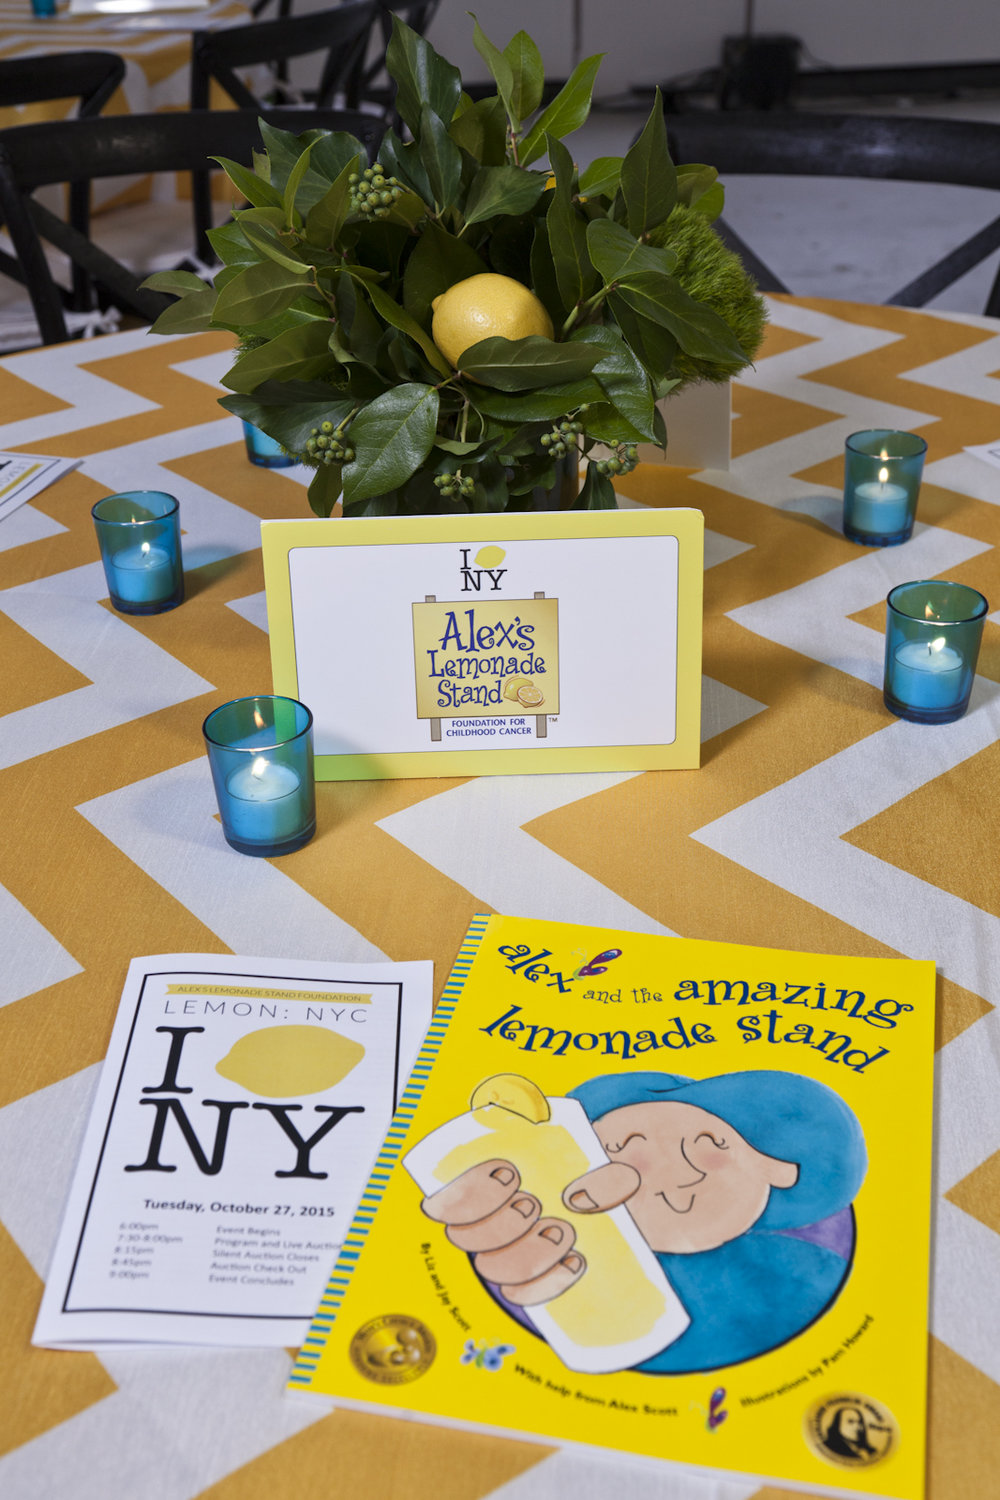 ALEX'S_LEMONADE_STAND_1600px_OCT_27_2015_6.jpg